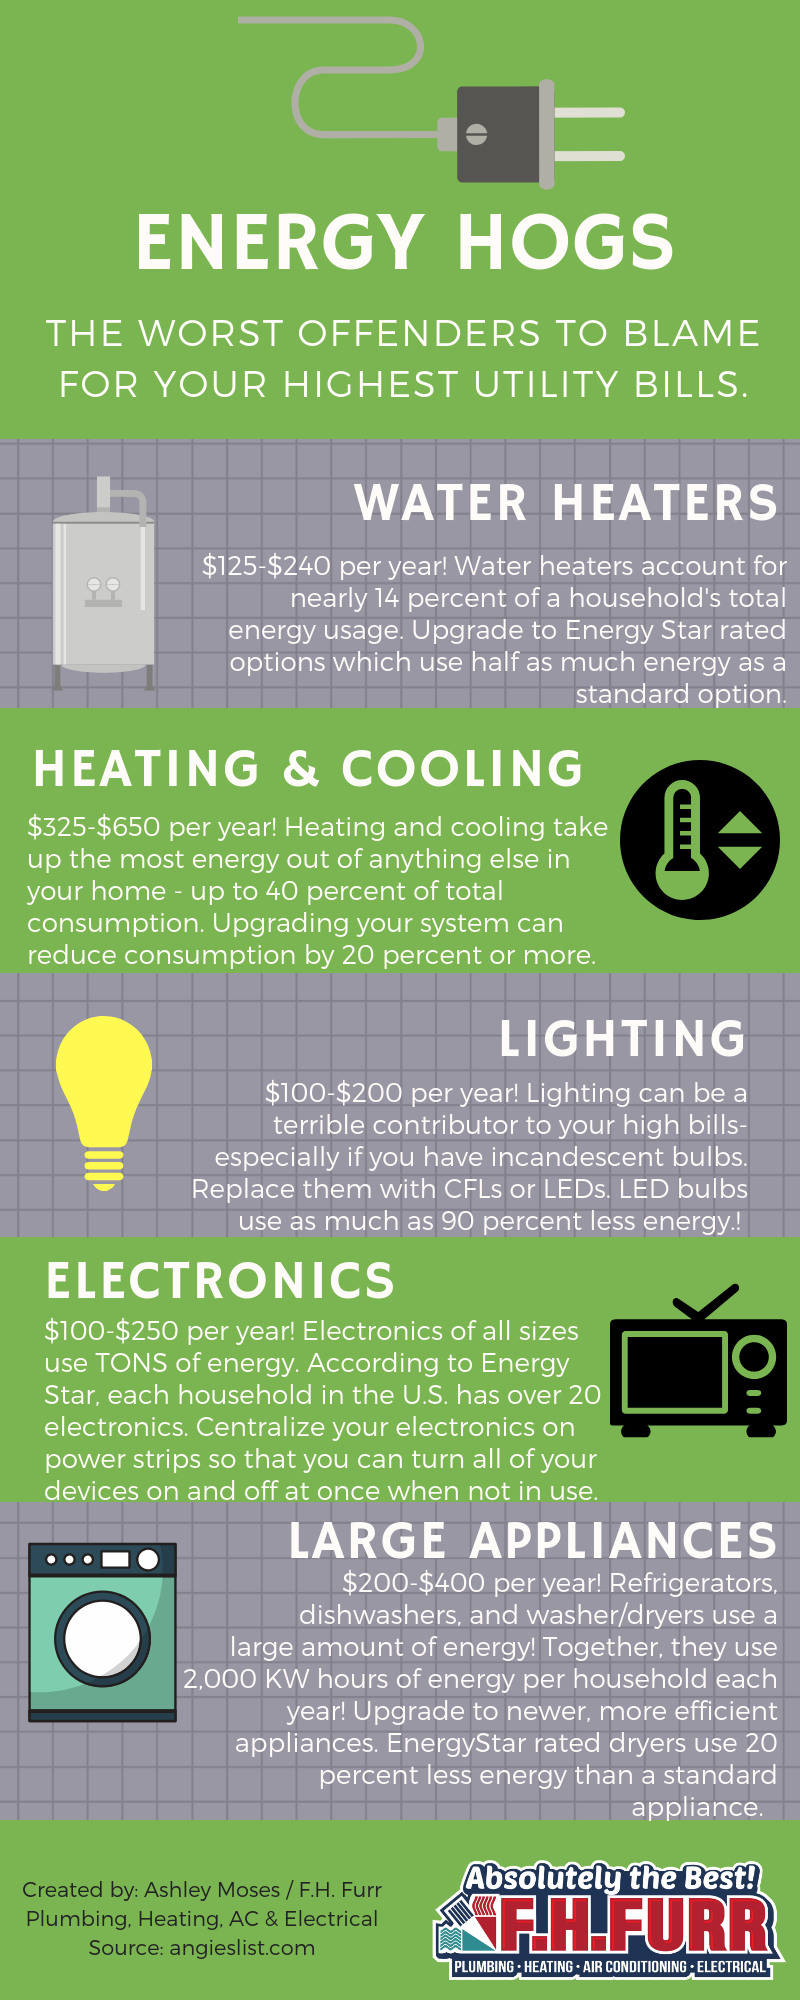 Energy Hogs: The Worst Offenders For Your Highest Utility Bill